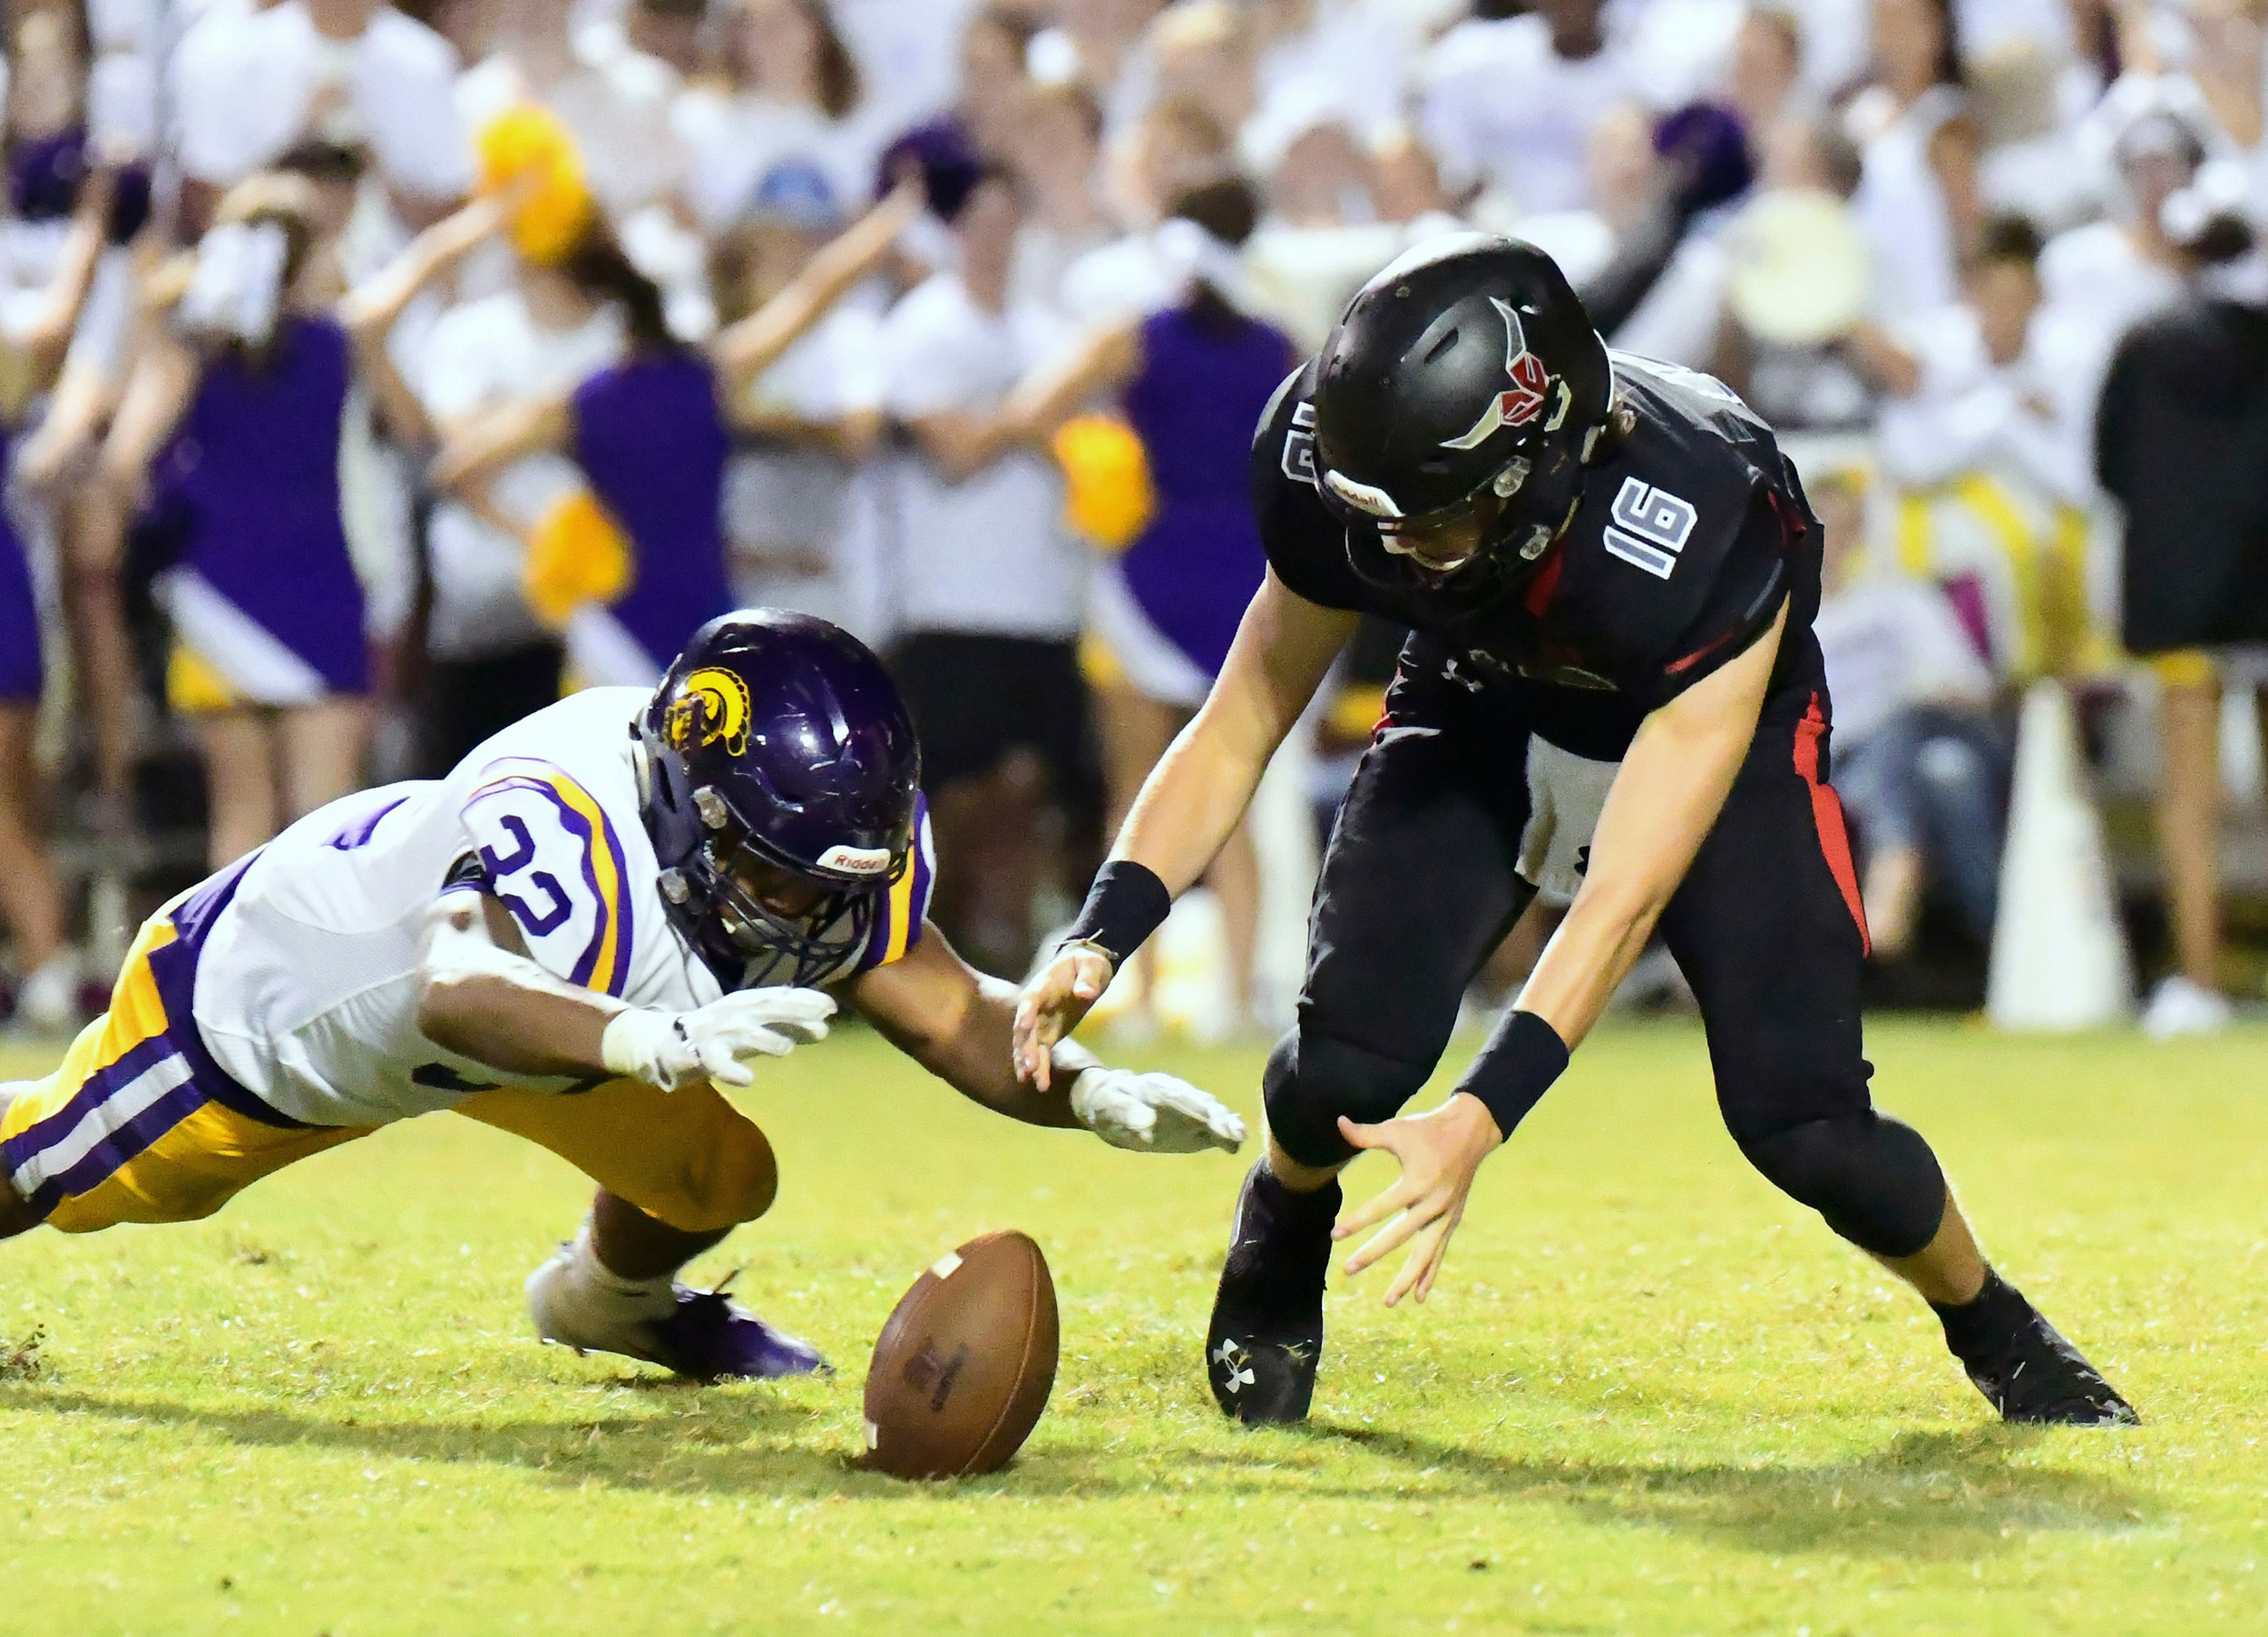 Jon Davis dives to recover a loose ball for DHS as SF QB Jackson Burkhalter reacts.